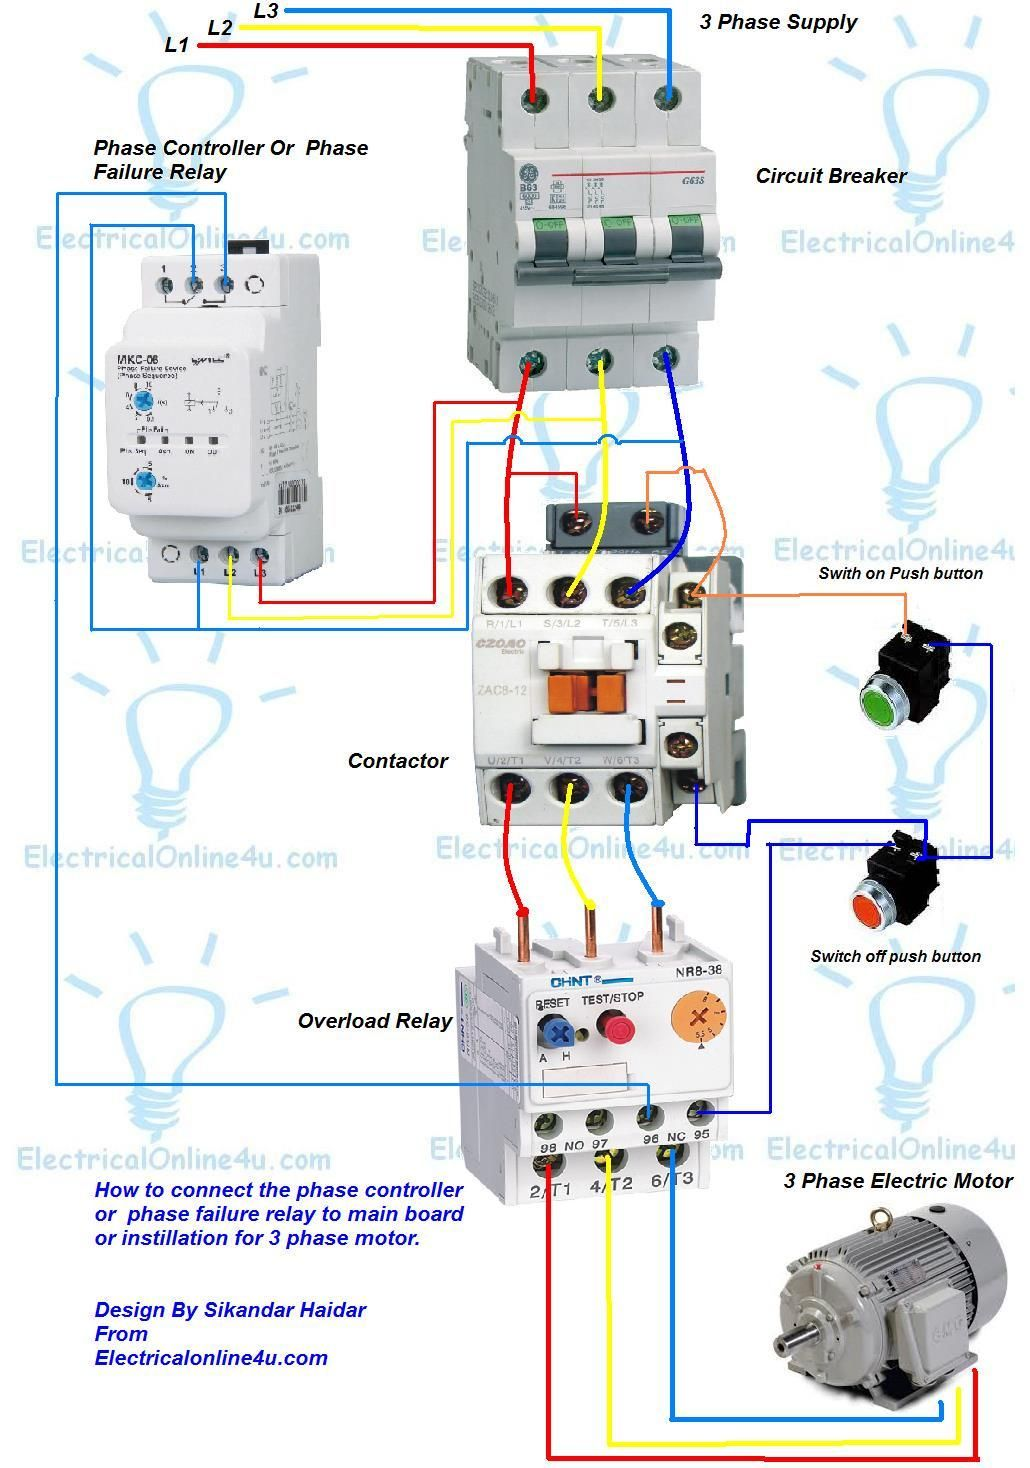 Wiring Diagram For Overload Relay : Phase controller wiring failure relay diagram di